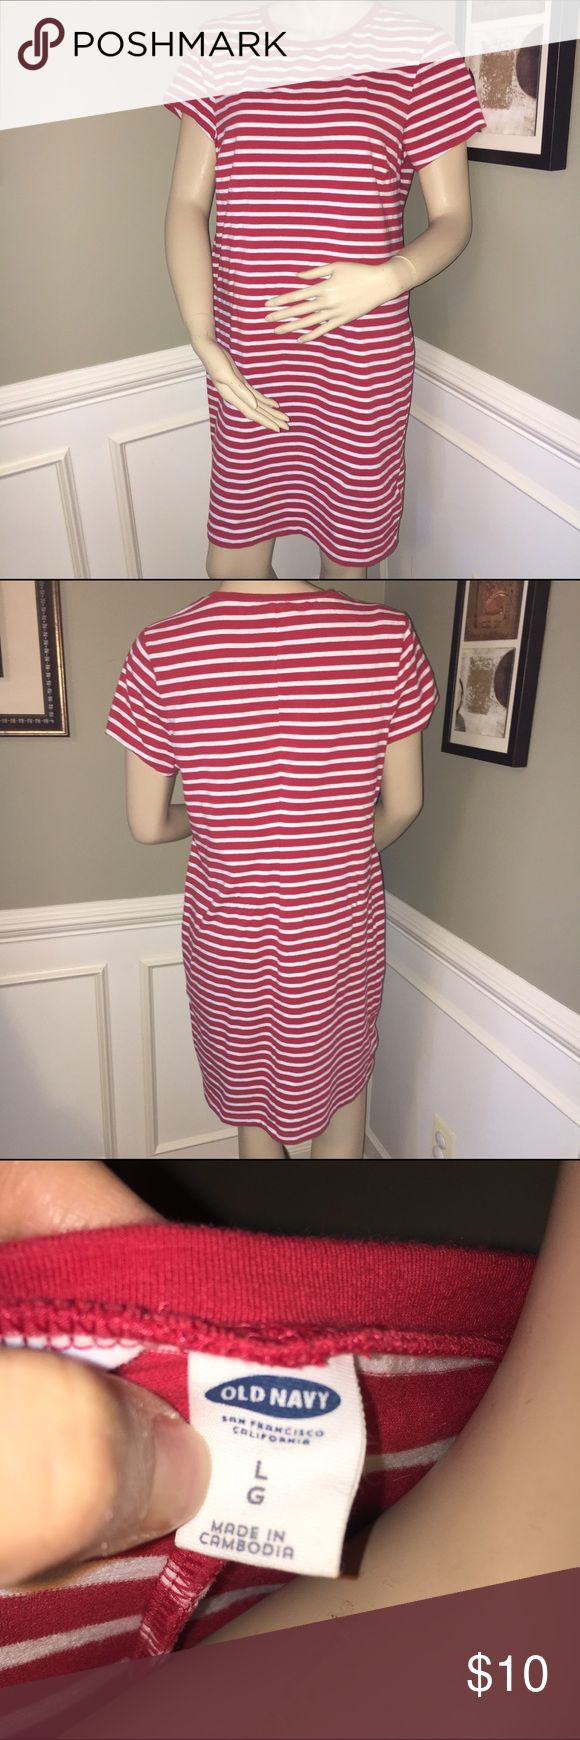 Old Navy Red & White Striped T-Shirt Dress - Sz L Selling for a friend, this is the perfect cotton dress to throw on with flip flops to go to the pool or grocery store. It washes well and is stain free. Bundle and save! Old Navy Dresses Midi